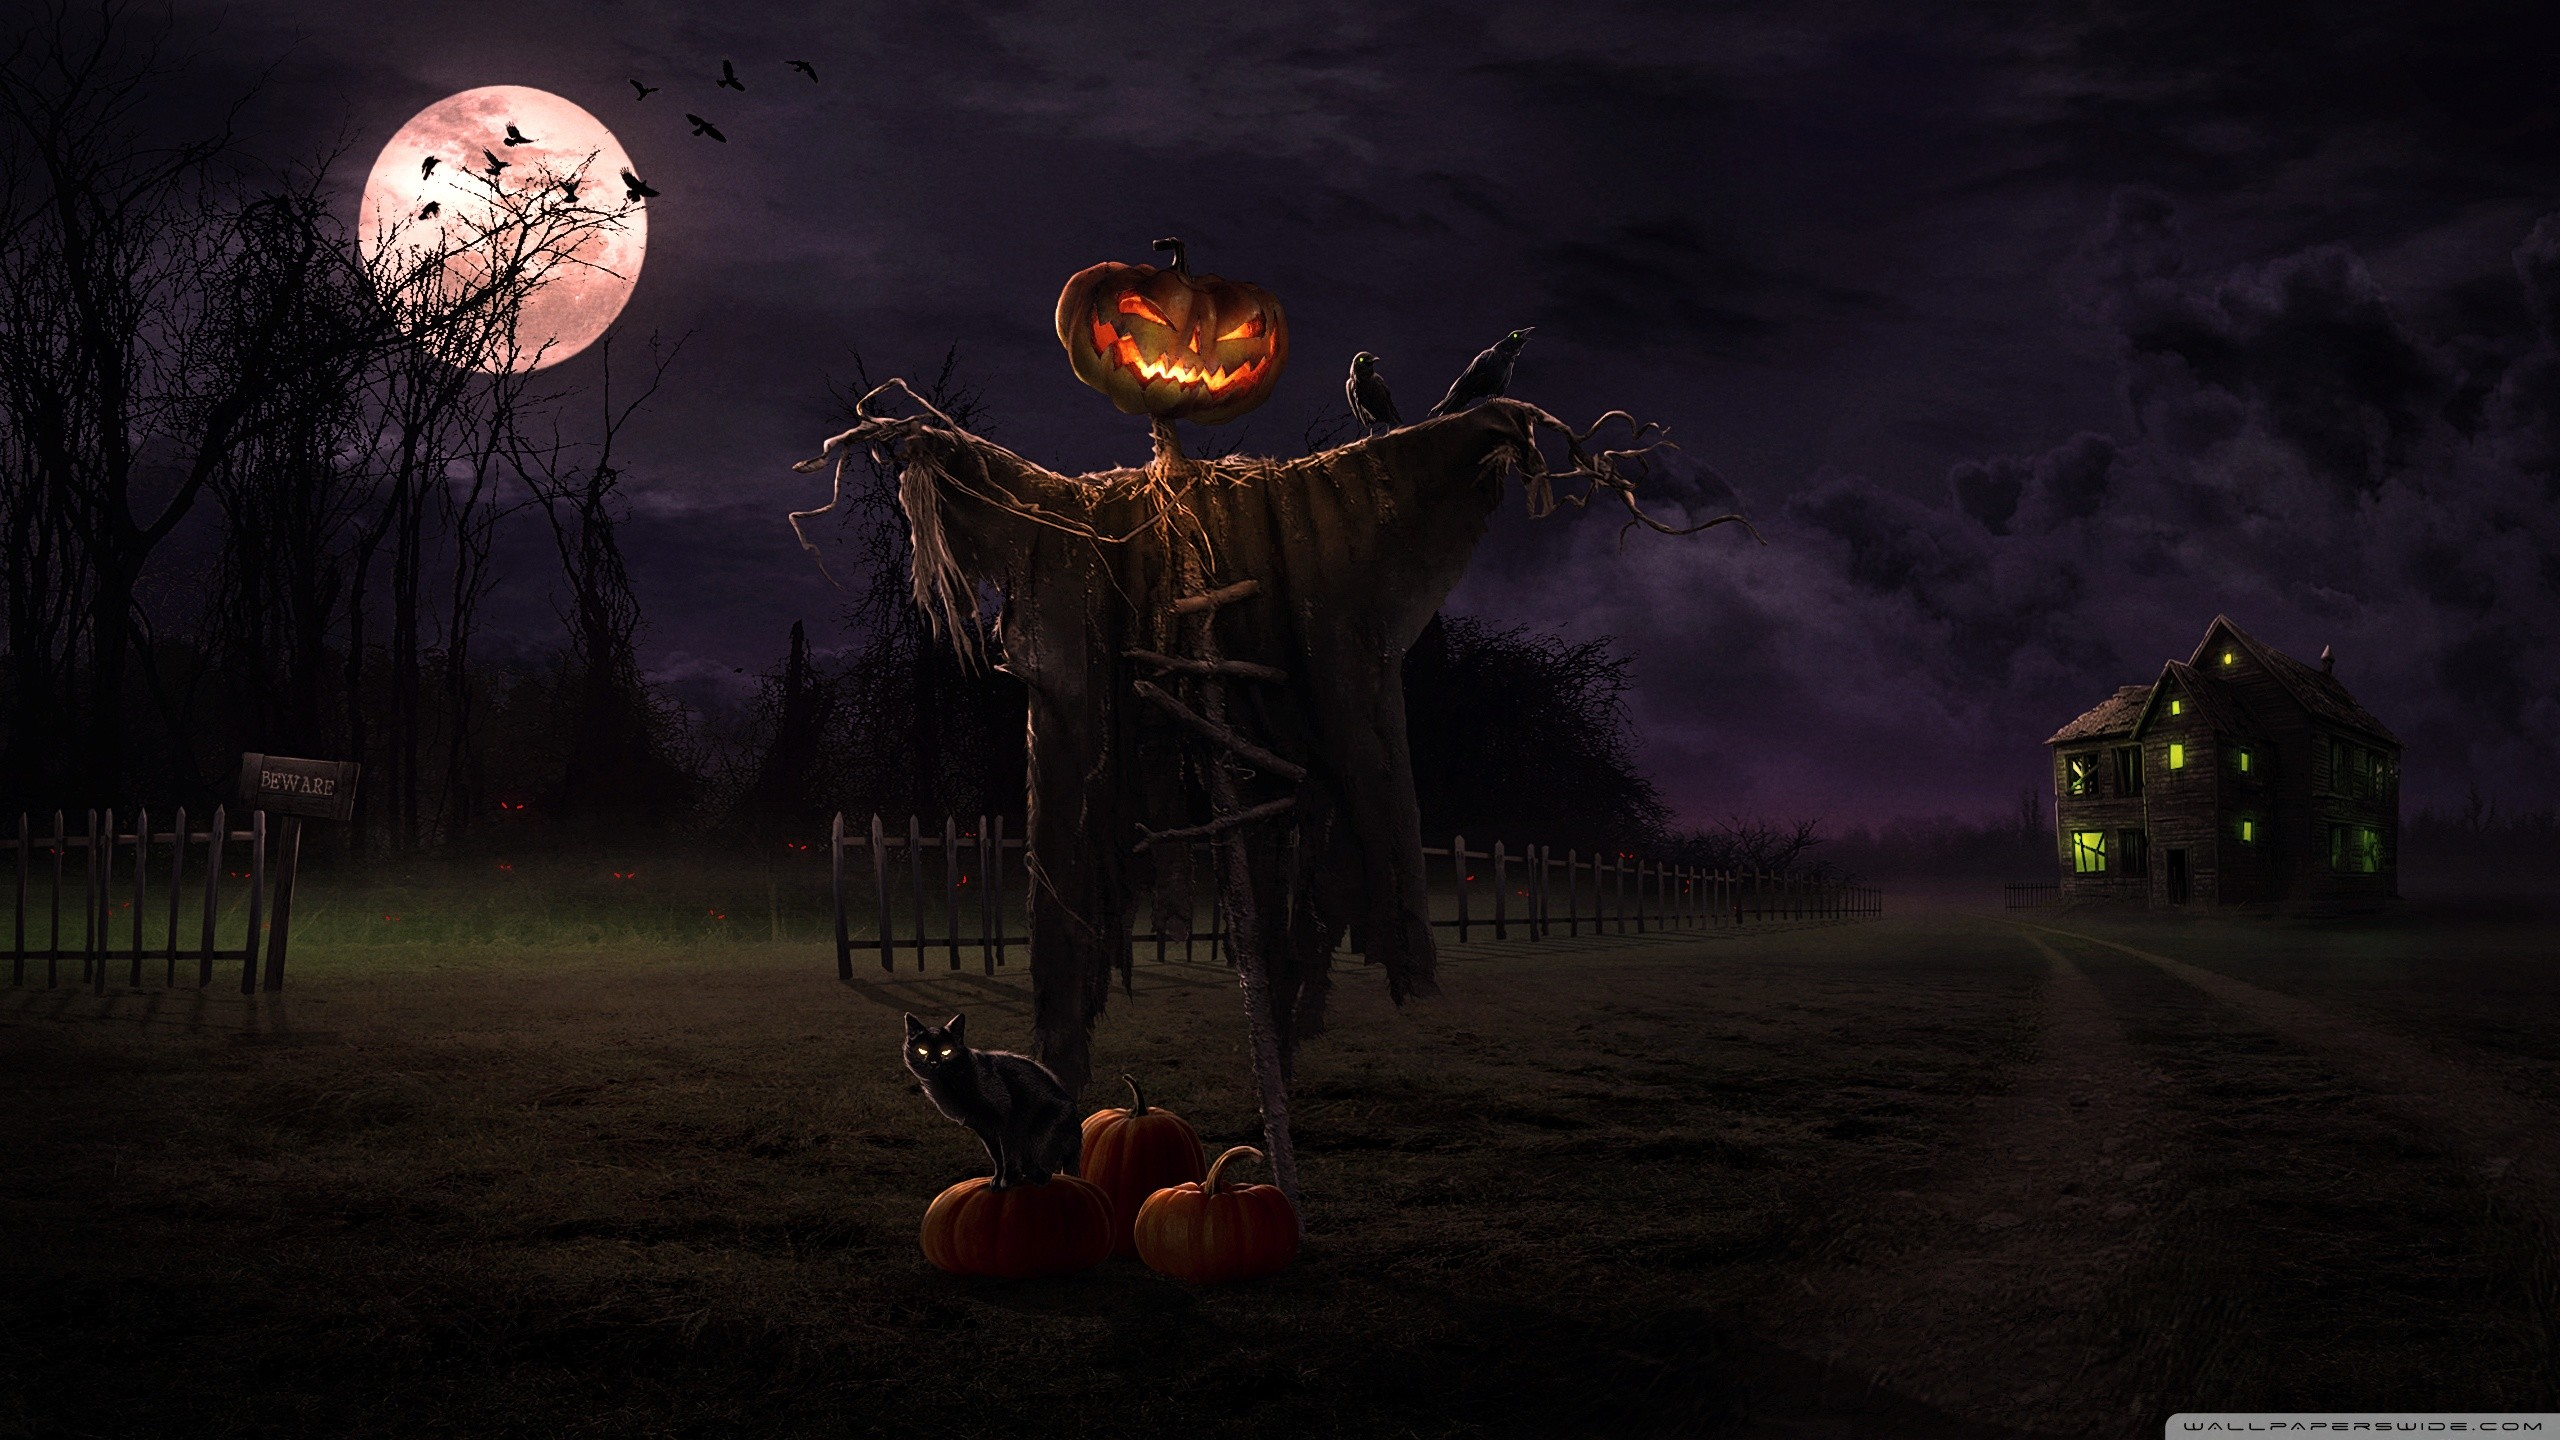 Res: 2560x1440, Full HD 1080p Halloween Wallpapers HD - HD Wallpapers